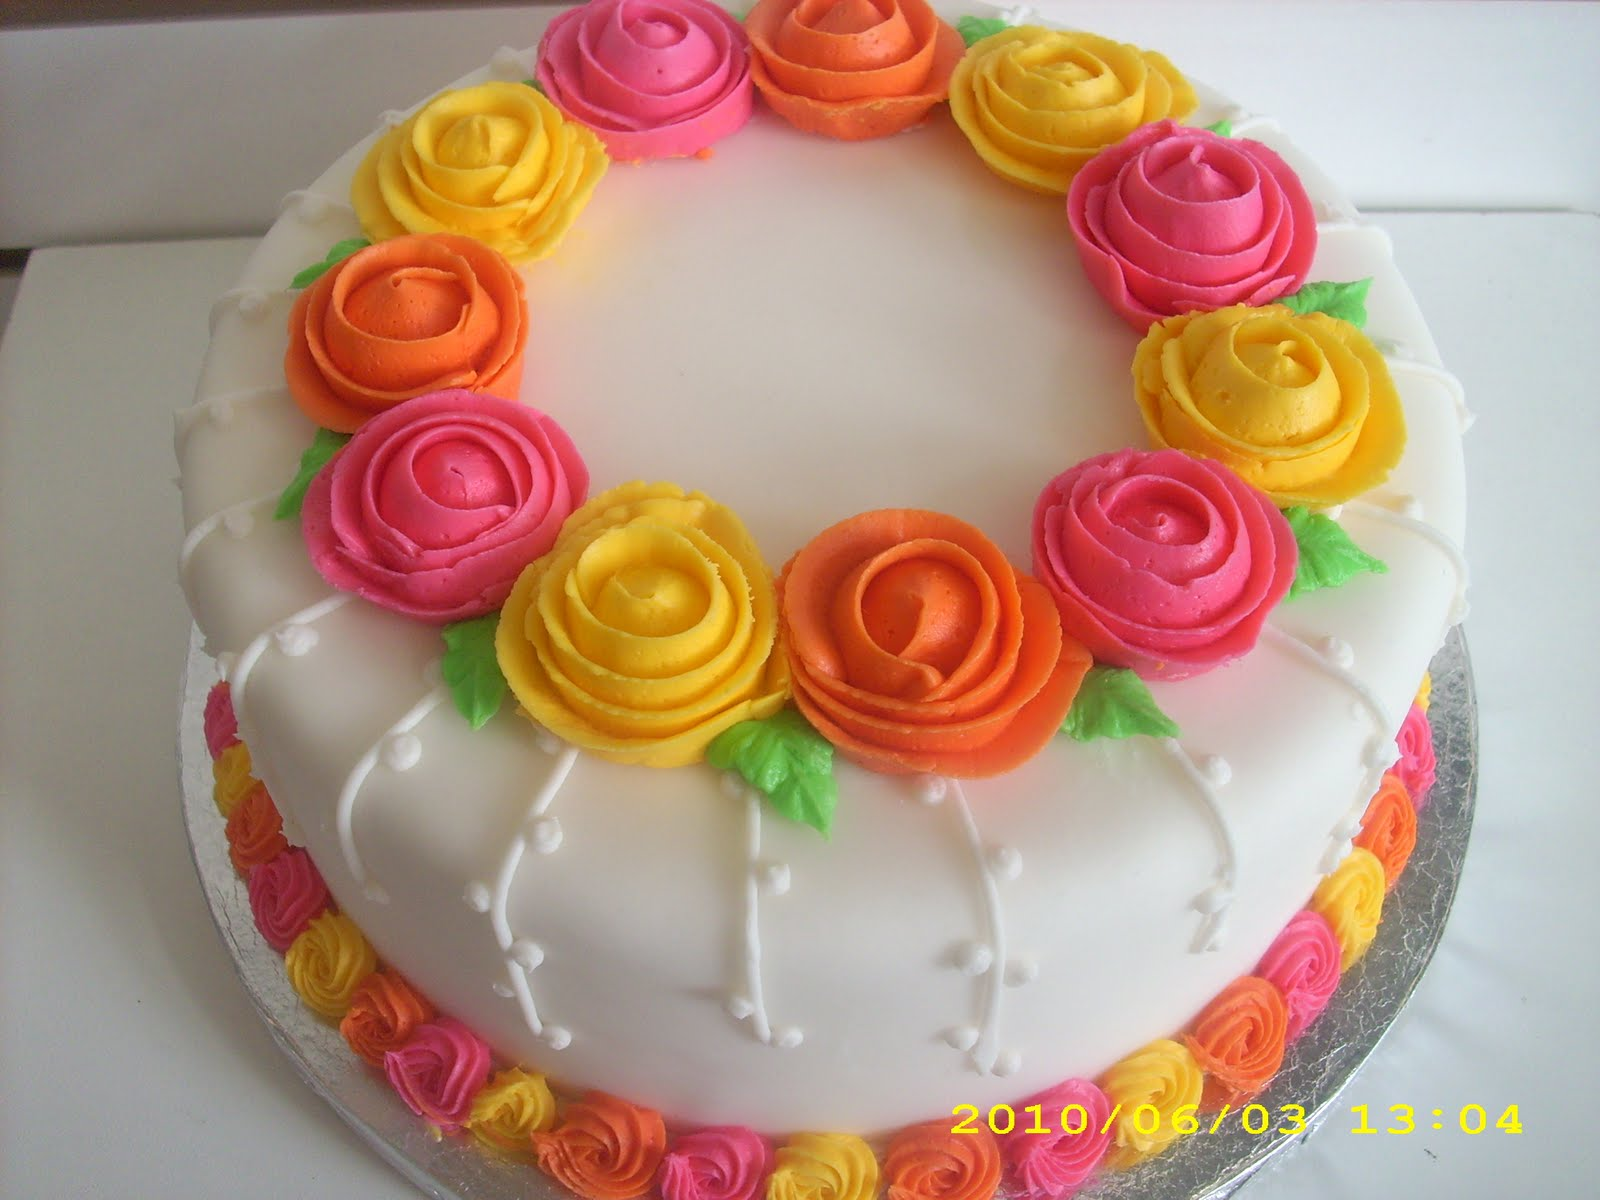 Decoration Ideas Of Cake : Cake Decorating heydanixo